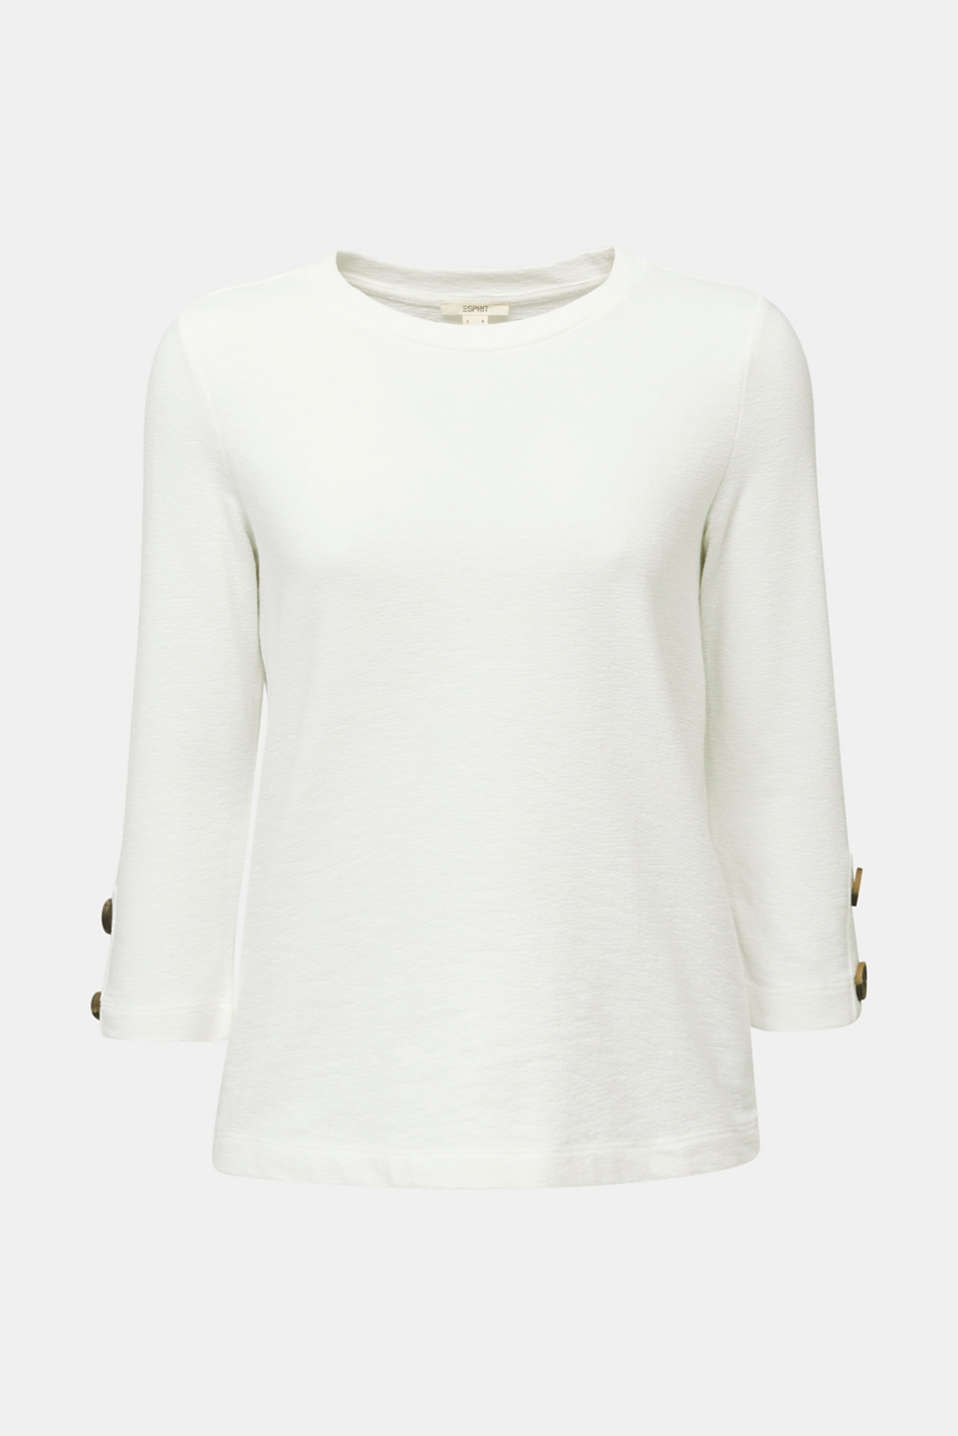 Top with buttons, 100% cotton, OFF WHITE, detail image number 6